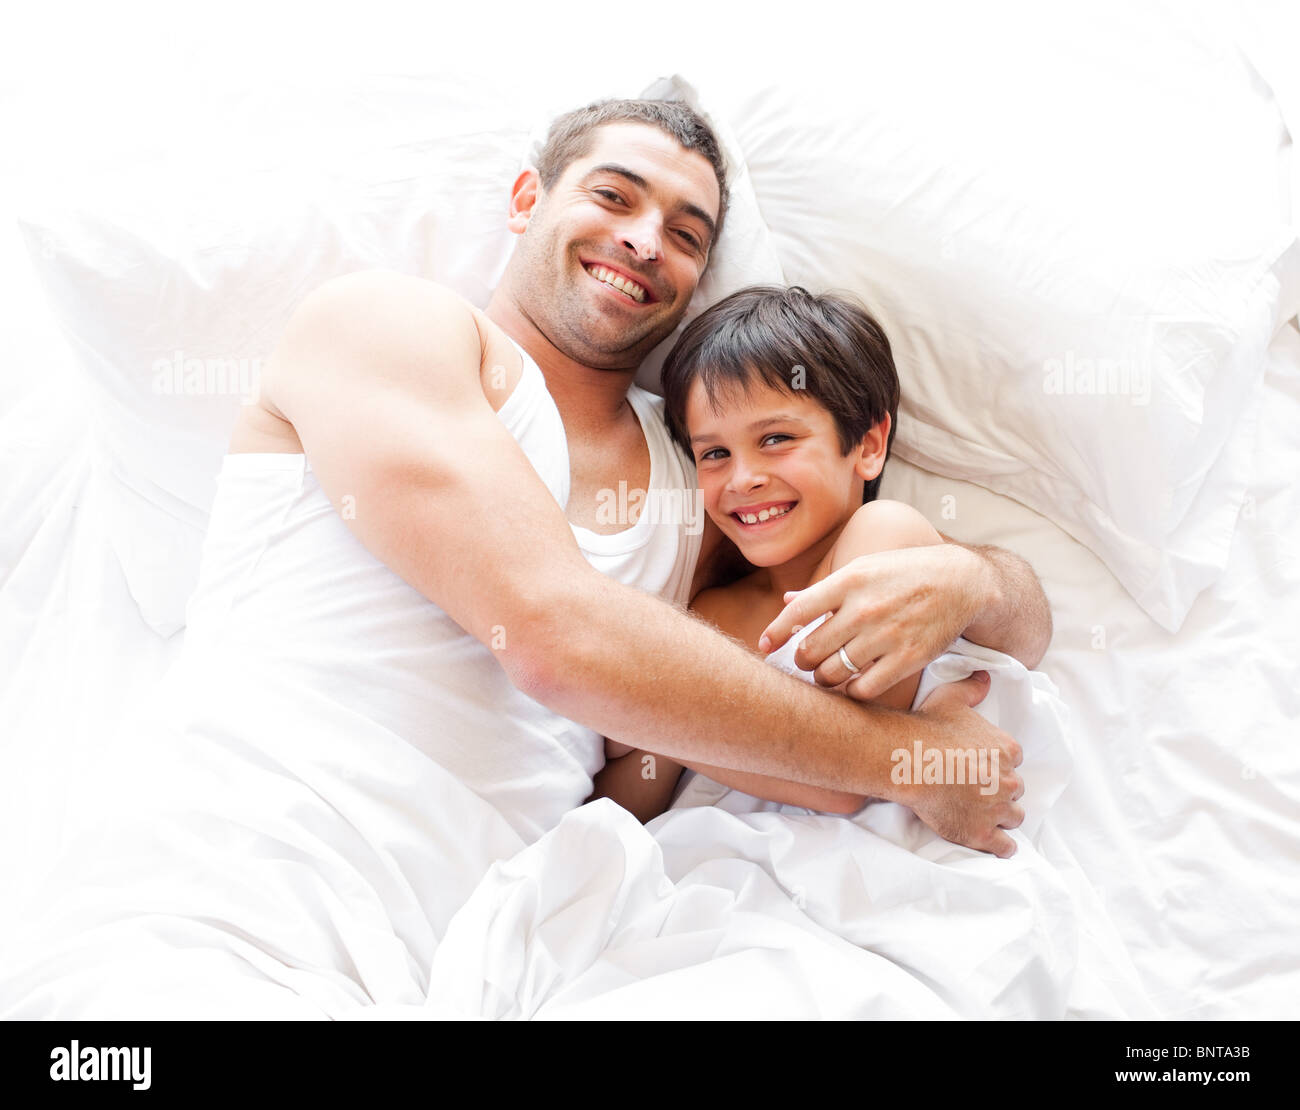 Smiling father and his son looking at the camera on the bed Stock Photo